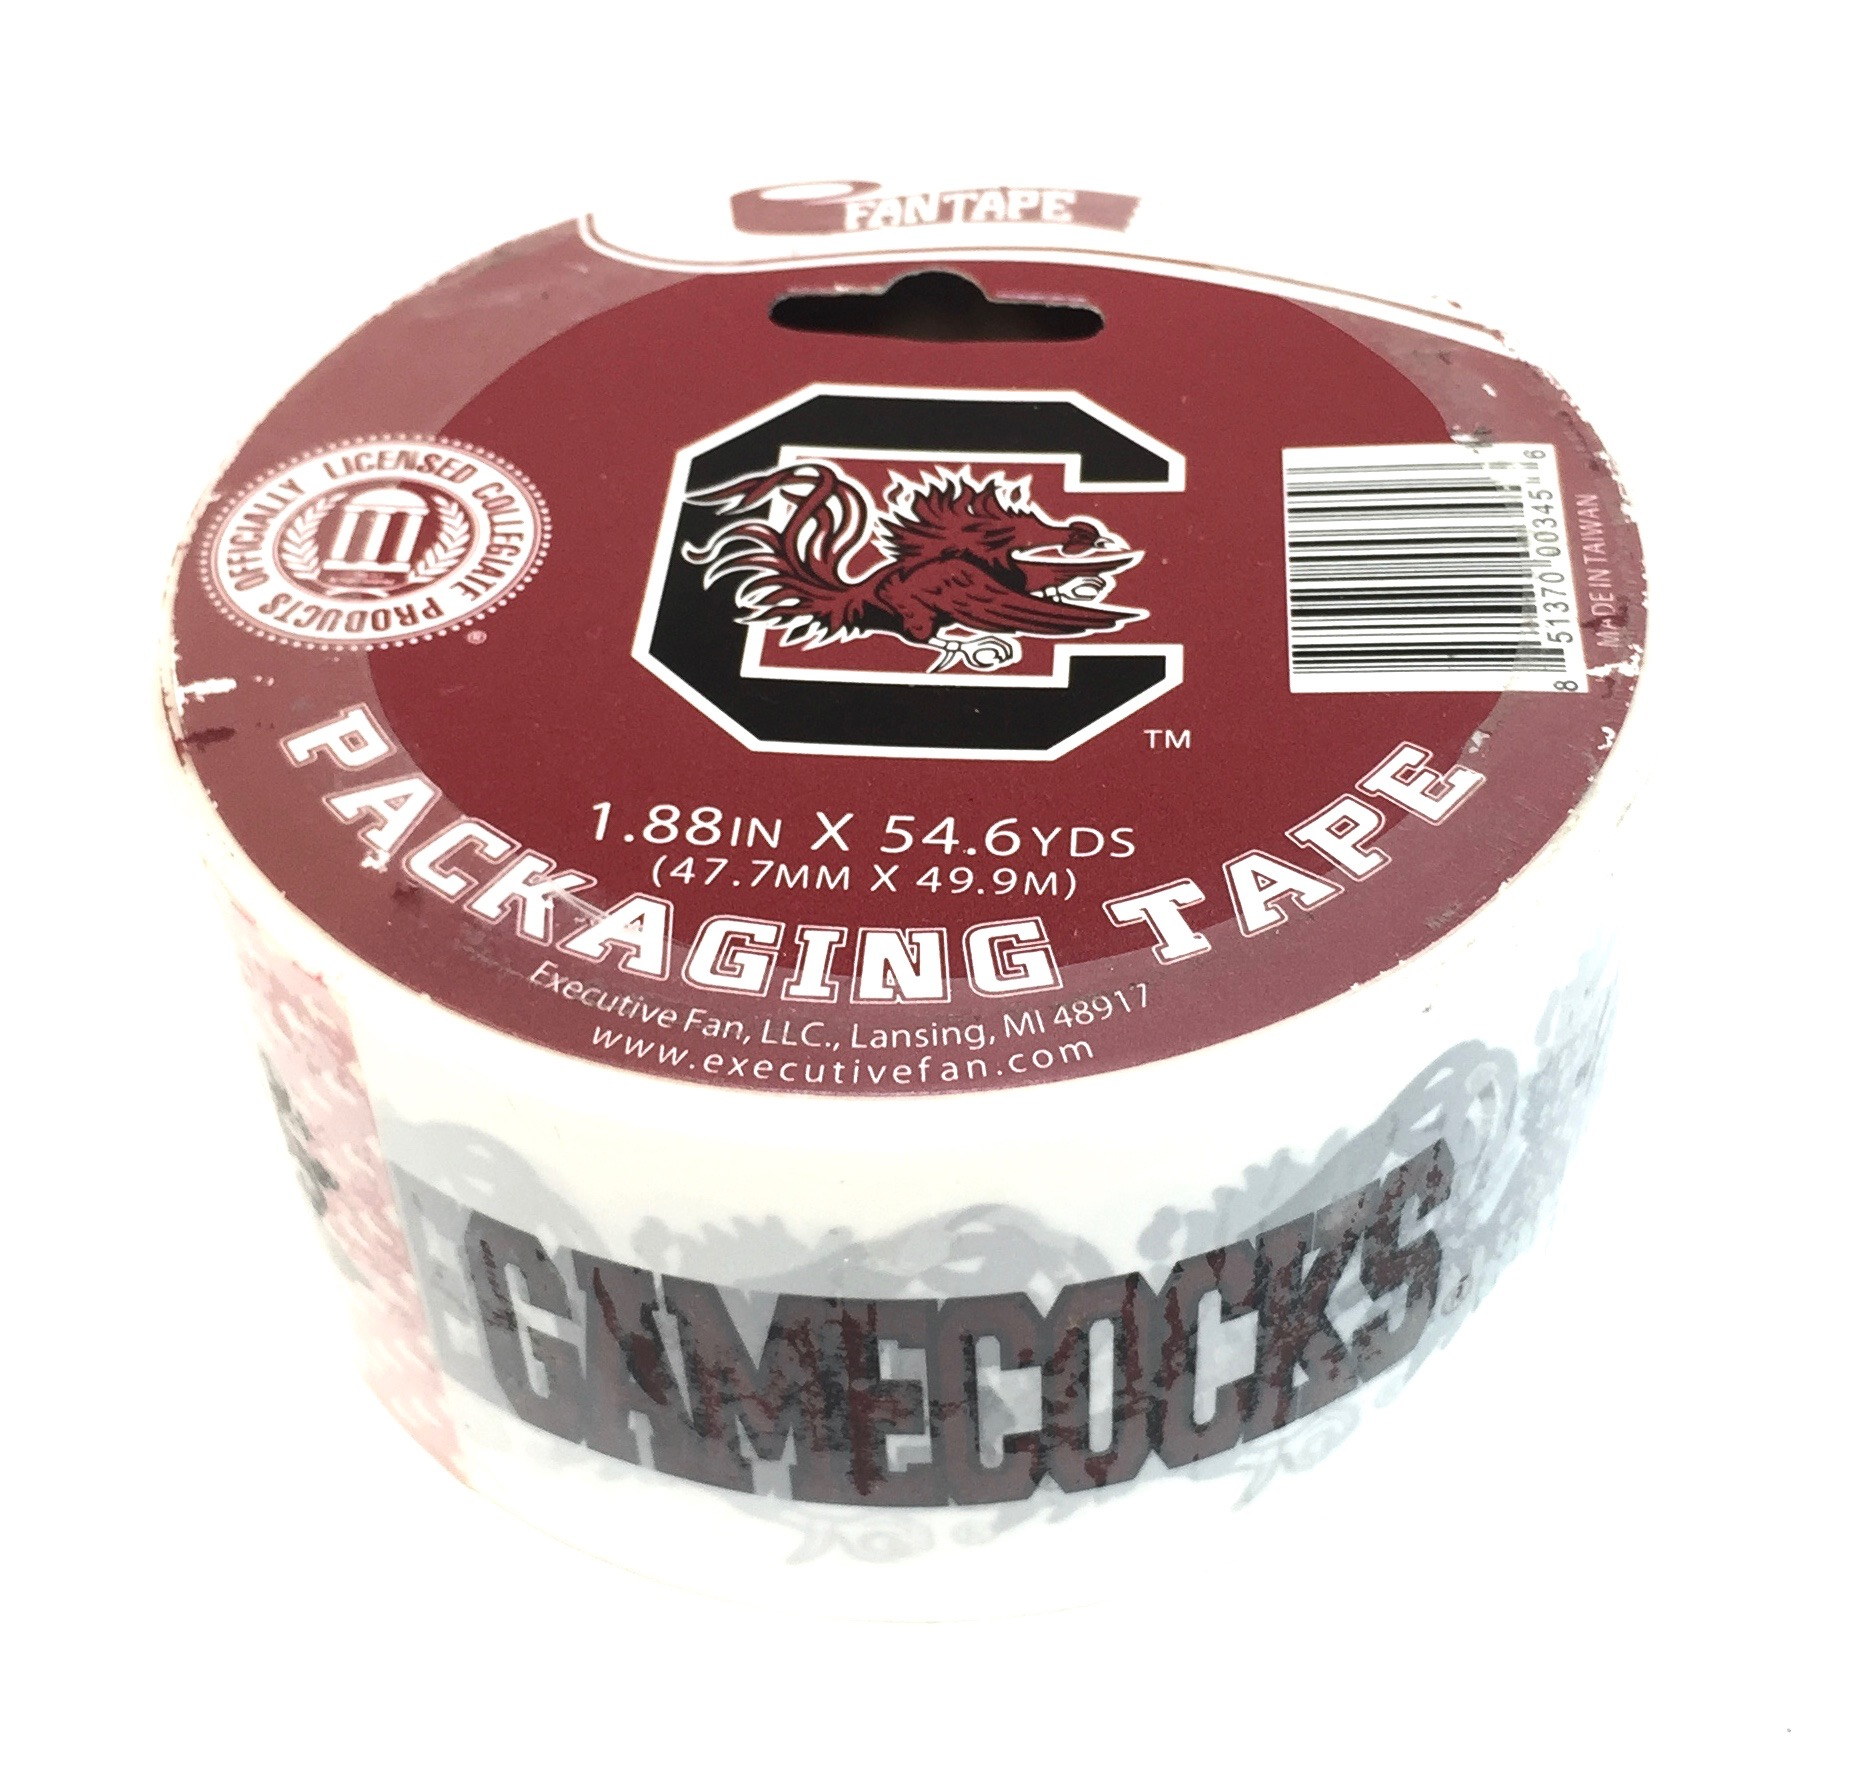 (003456) Packing Tape - South Carolina